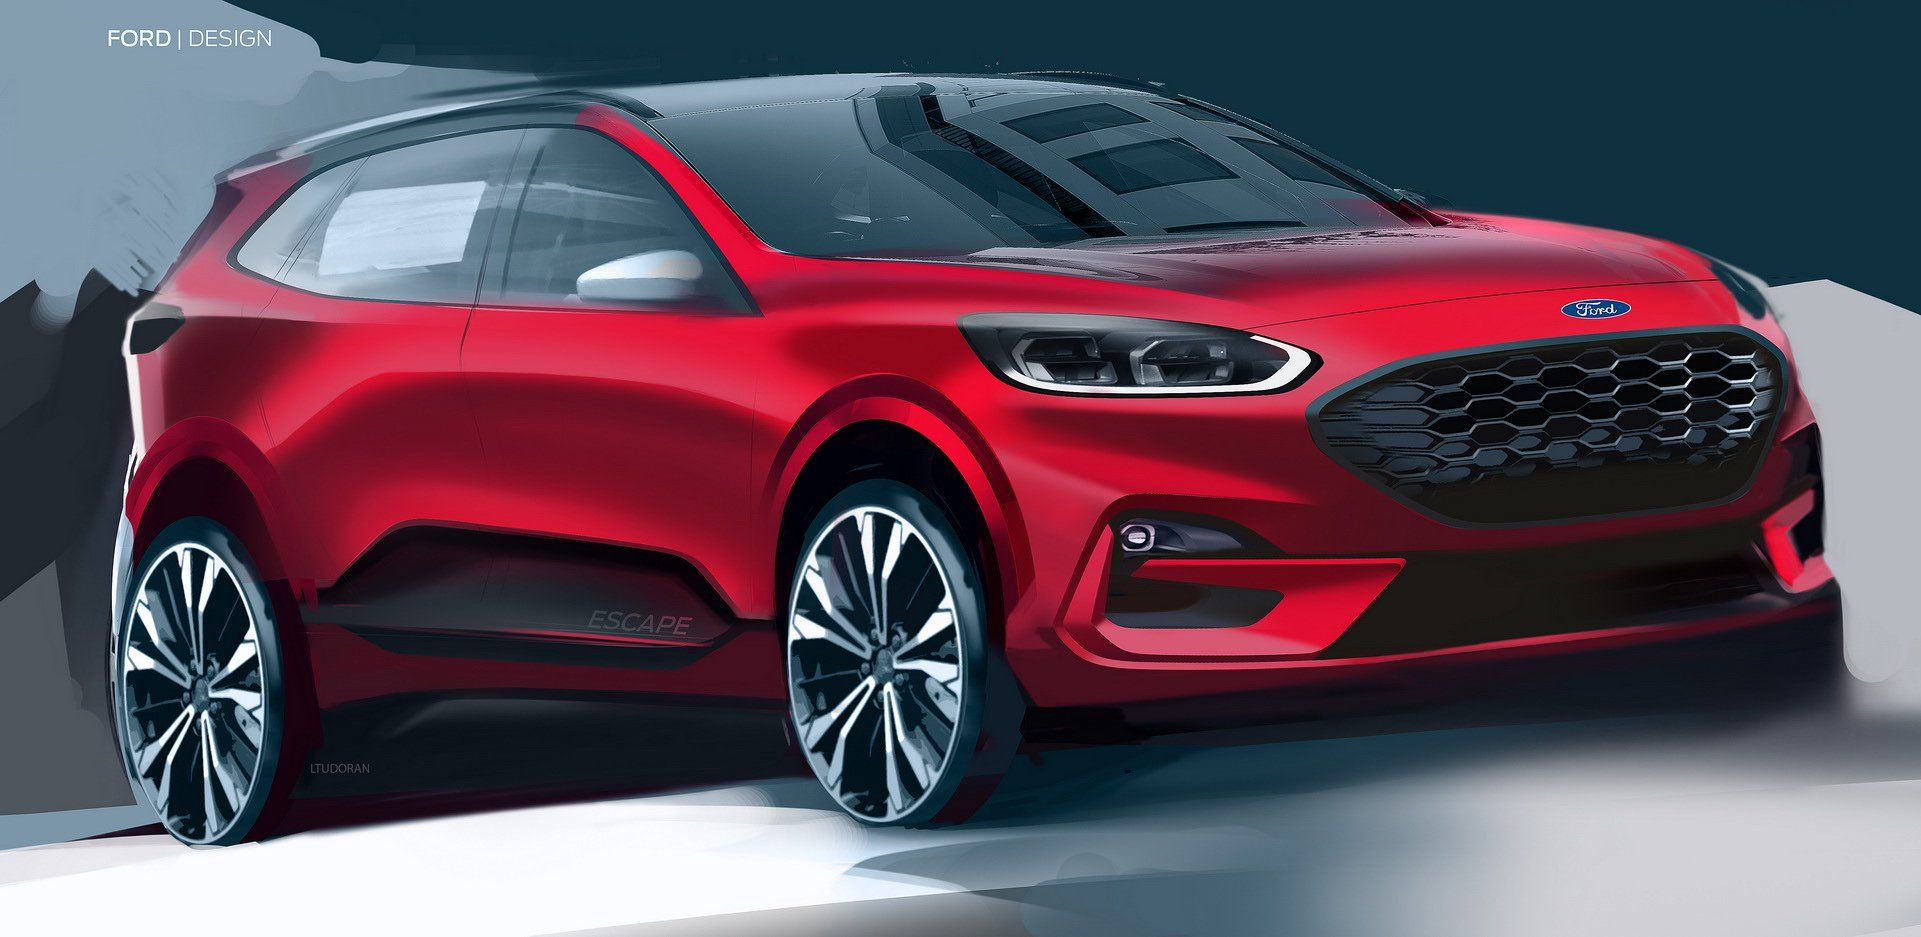 New Ford Kuga Reinvents Itself As A Stylish Suv With Three Electrified Options Ford Car Design Sketch Automotive Design